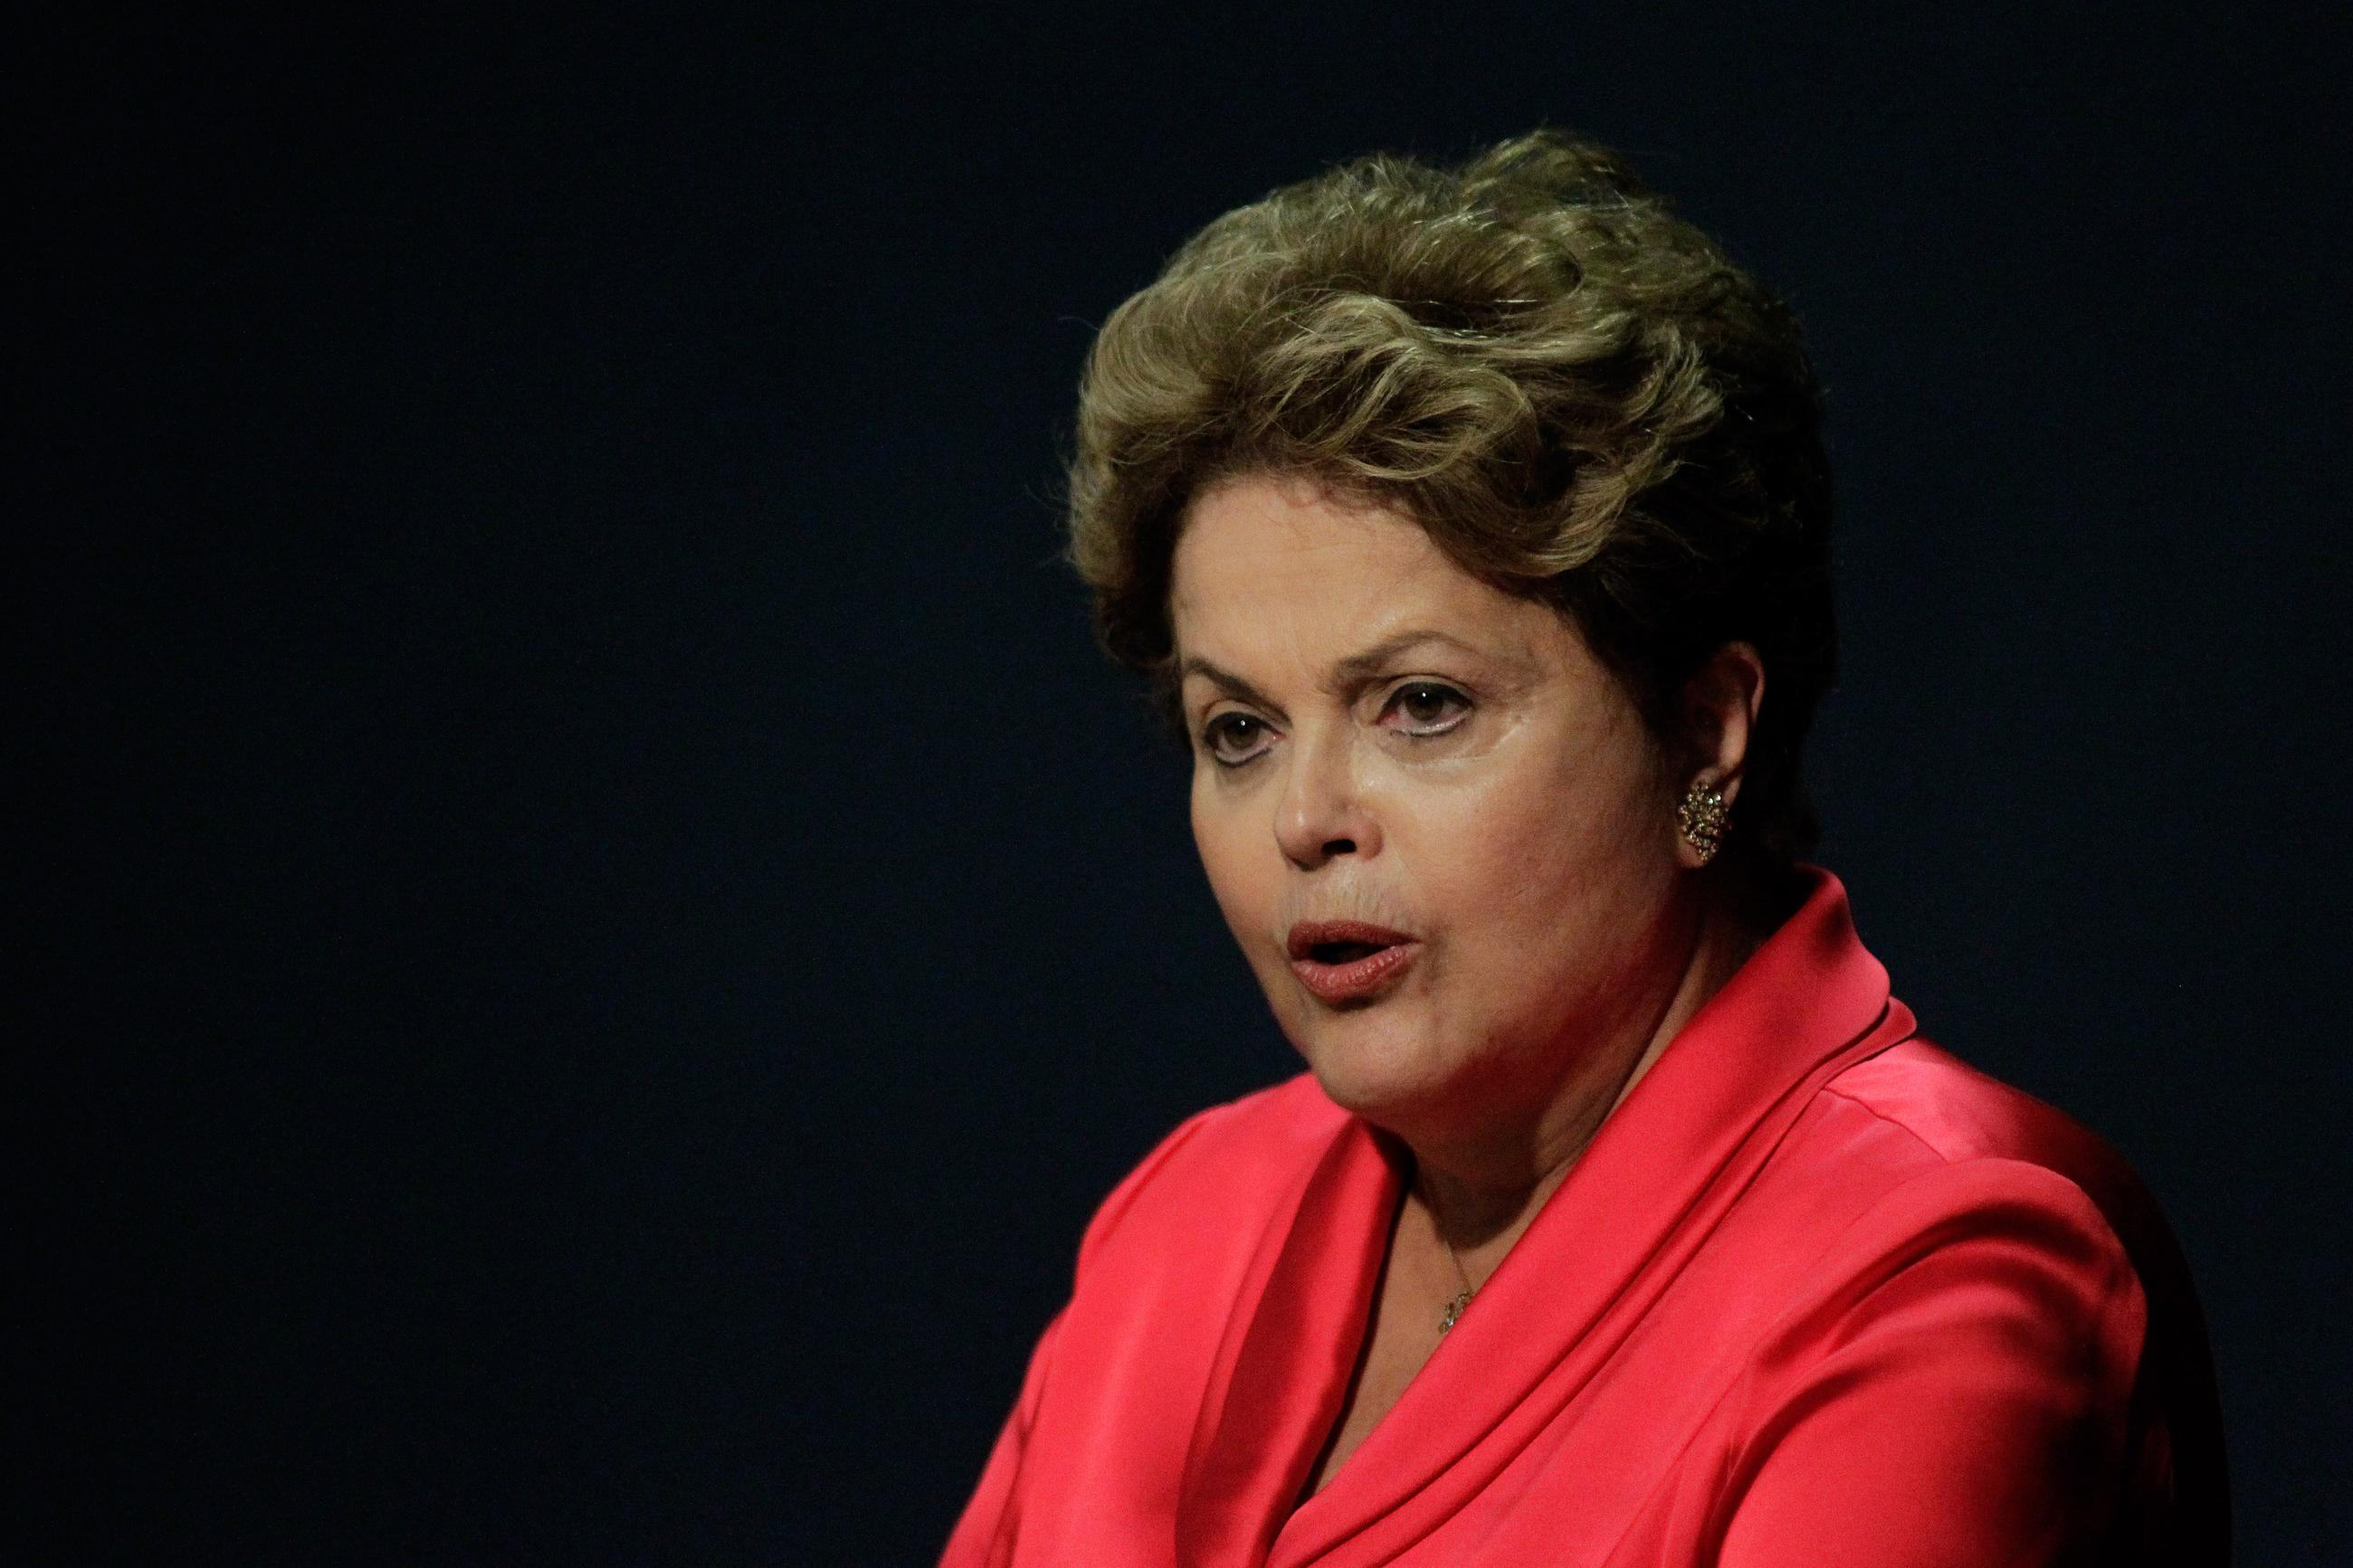 Brazil's President Accuses U.S. of Serious Human-Rights Violations